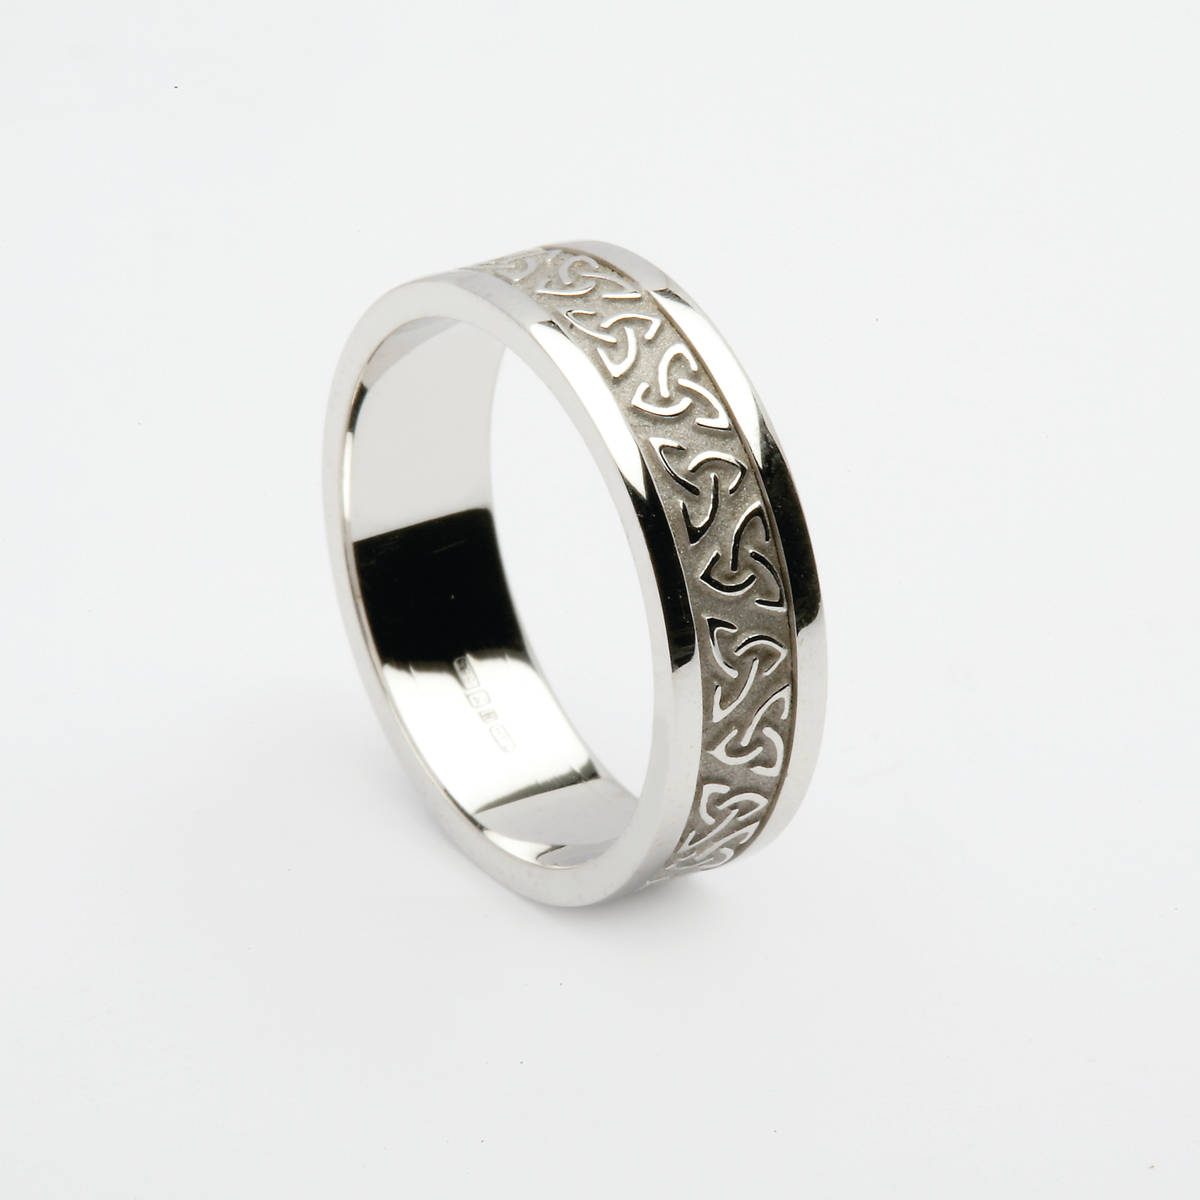 A very distinctive 18 carat white gold man's raised Celtic knot repeating design wedding ring.Also very comfortable to wear.